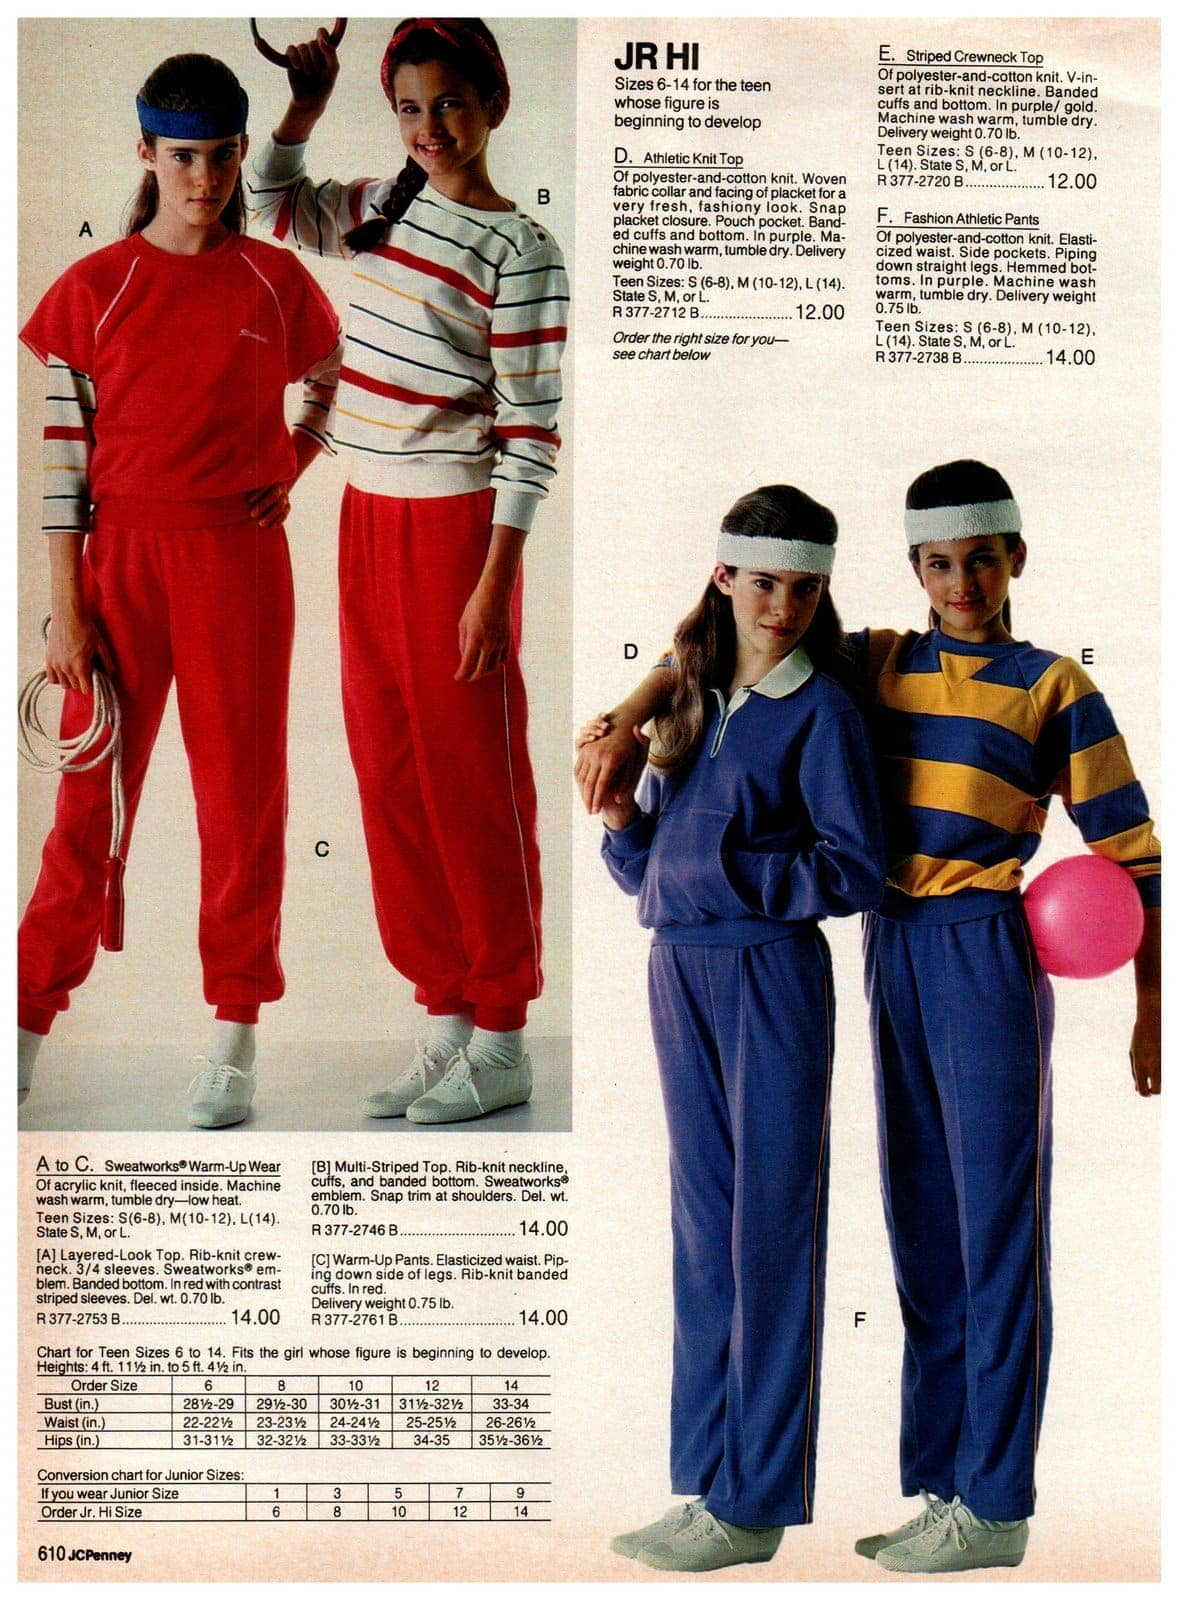 Sweatsuits for girls - retro athletic warm-up wear, knit tops and striped crewneck tops